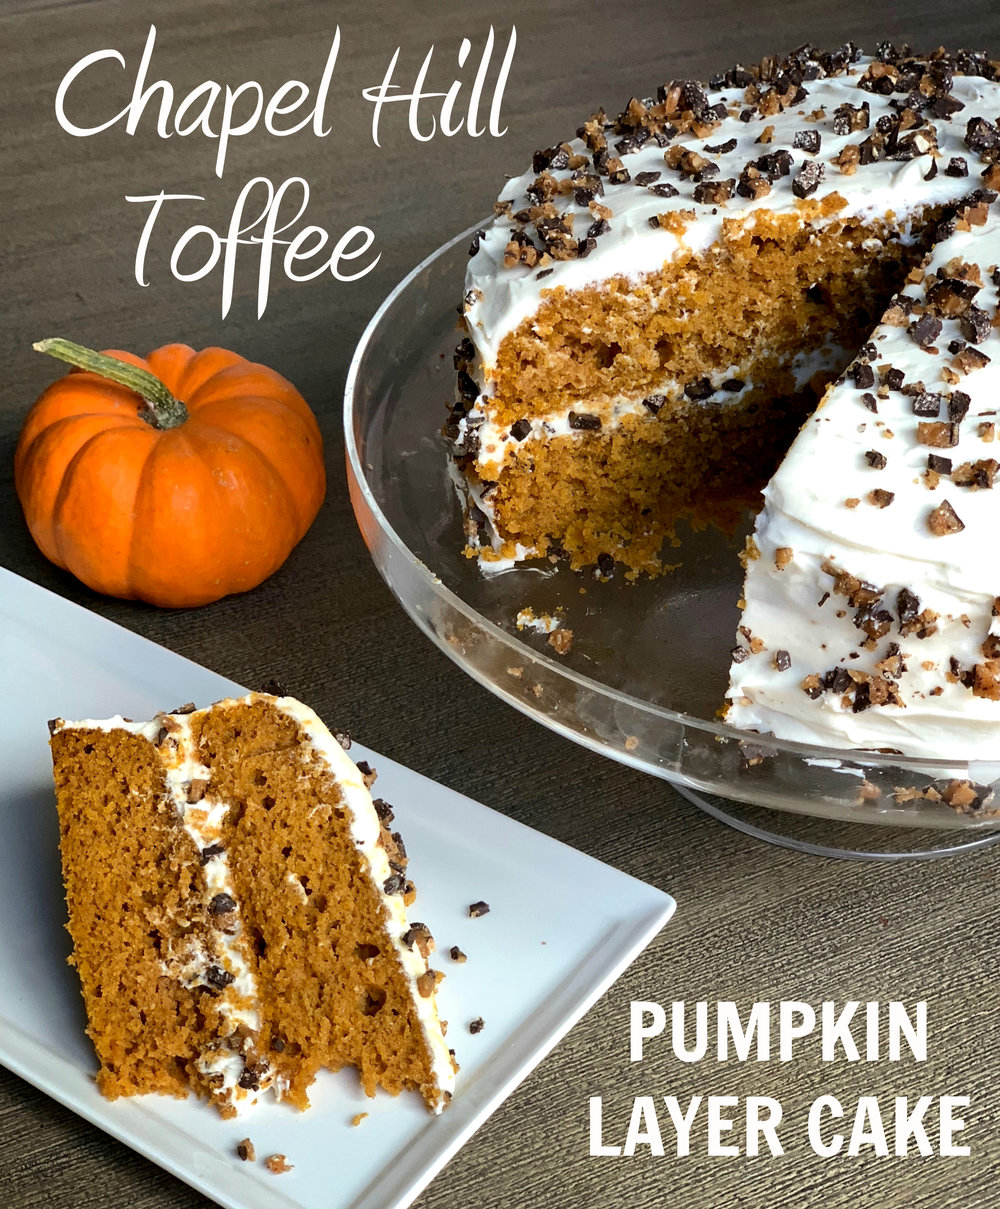 Pumpkin Cake 01 CHT with text.jpg